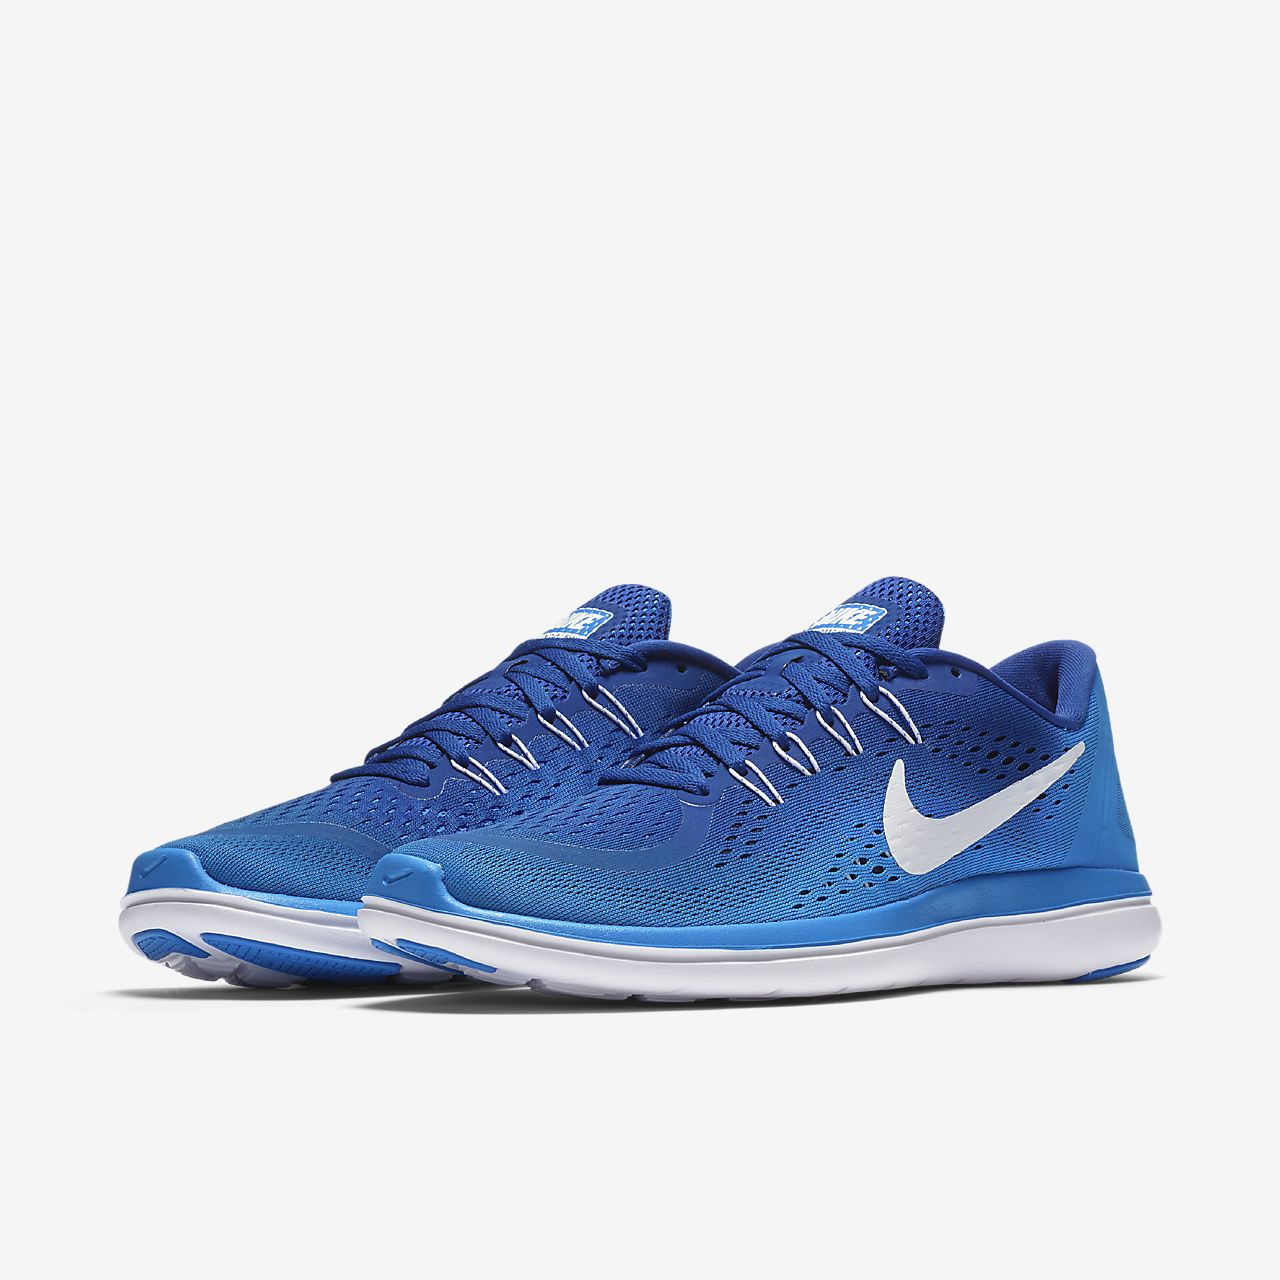 Nike Free Rn Running Shoes Review